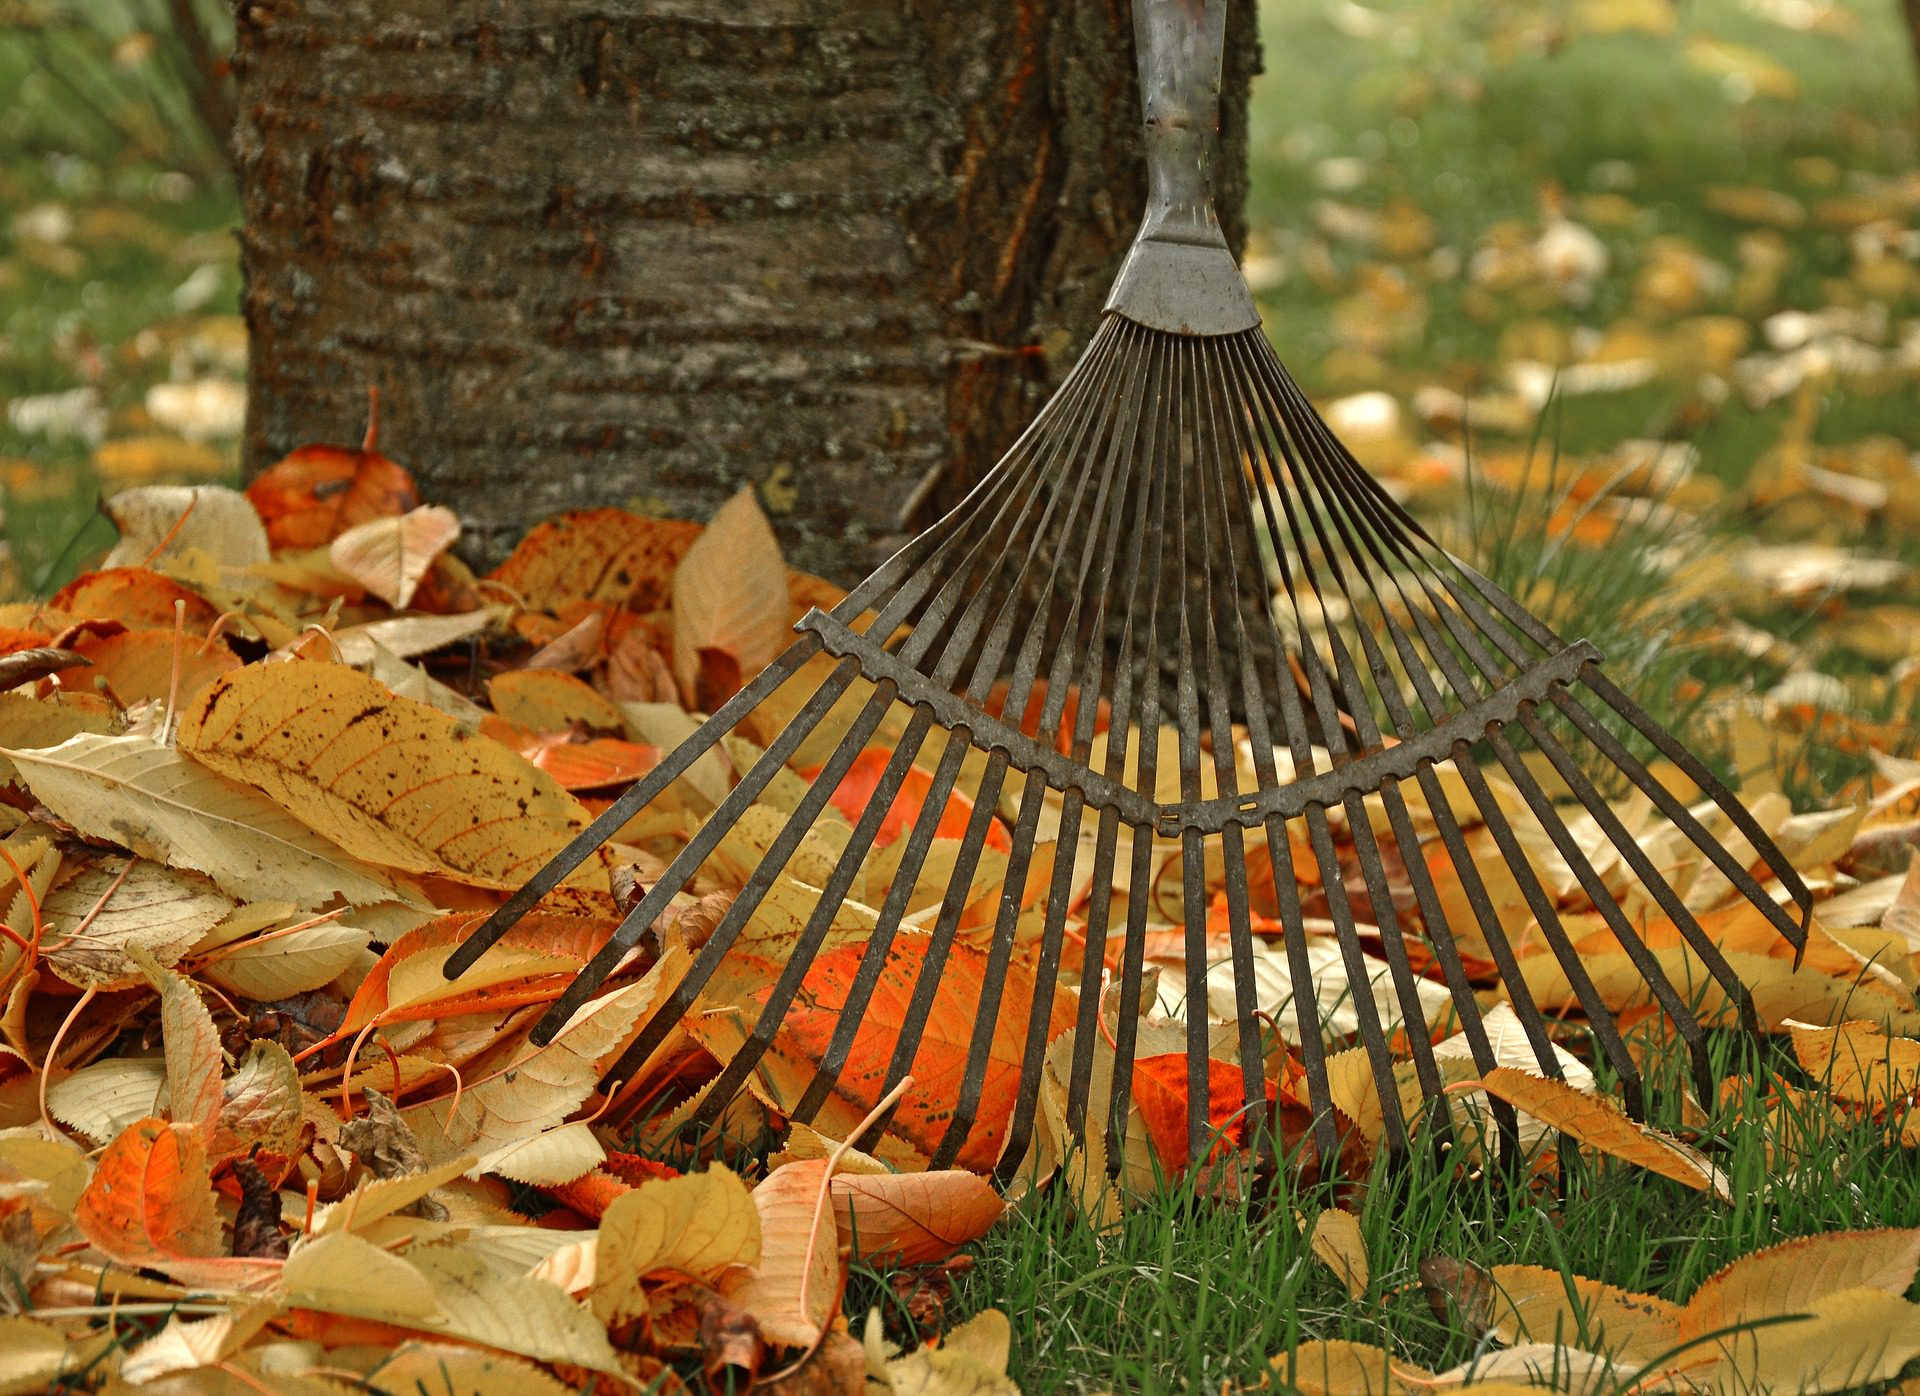 Autumn Gardening: How to keep your garden thriving into winter